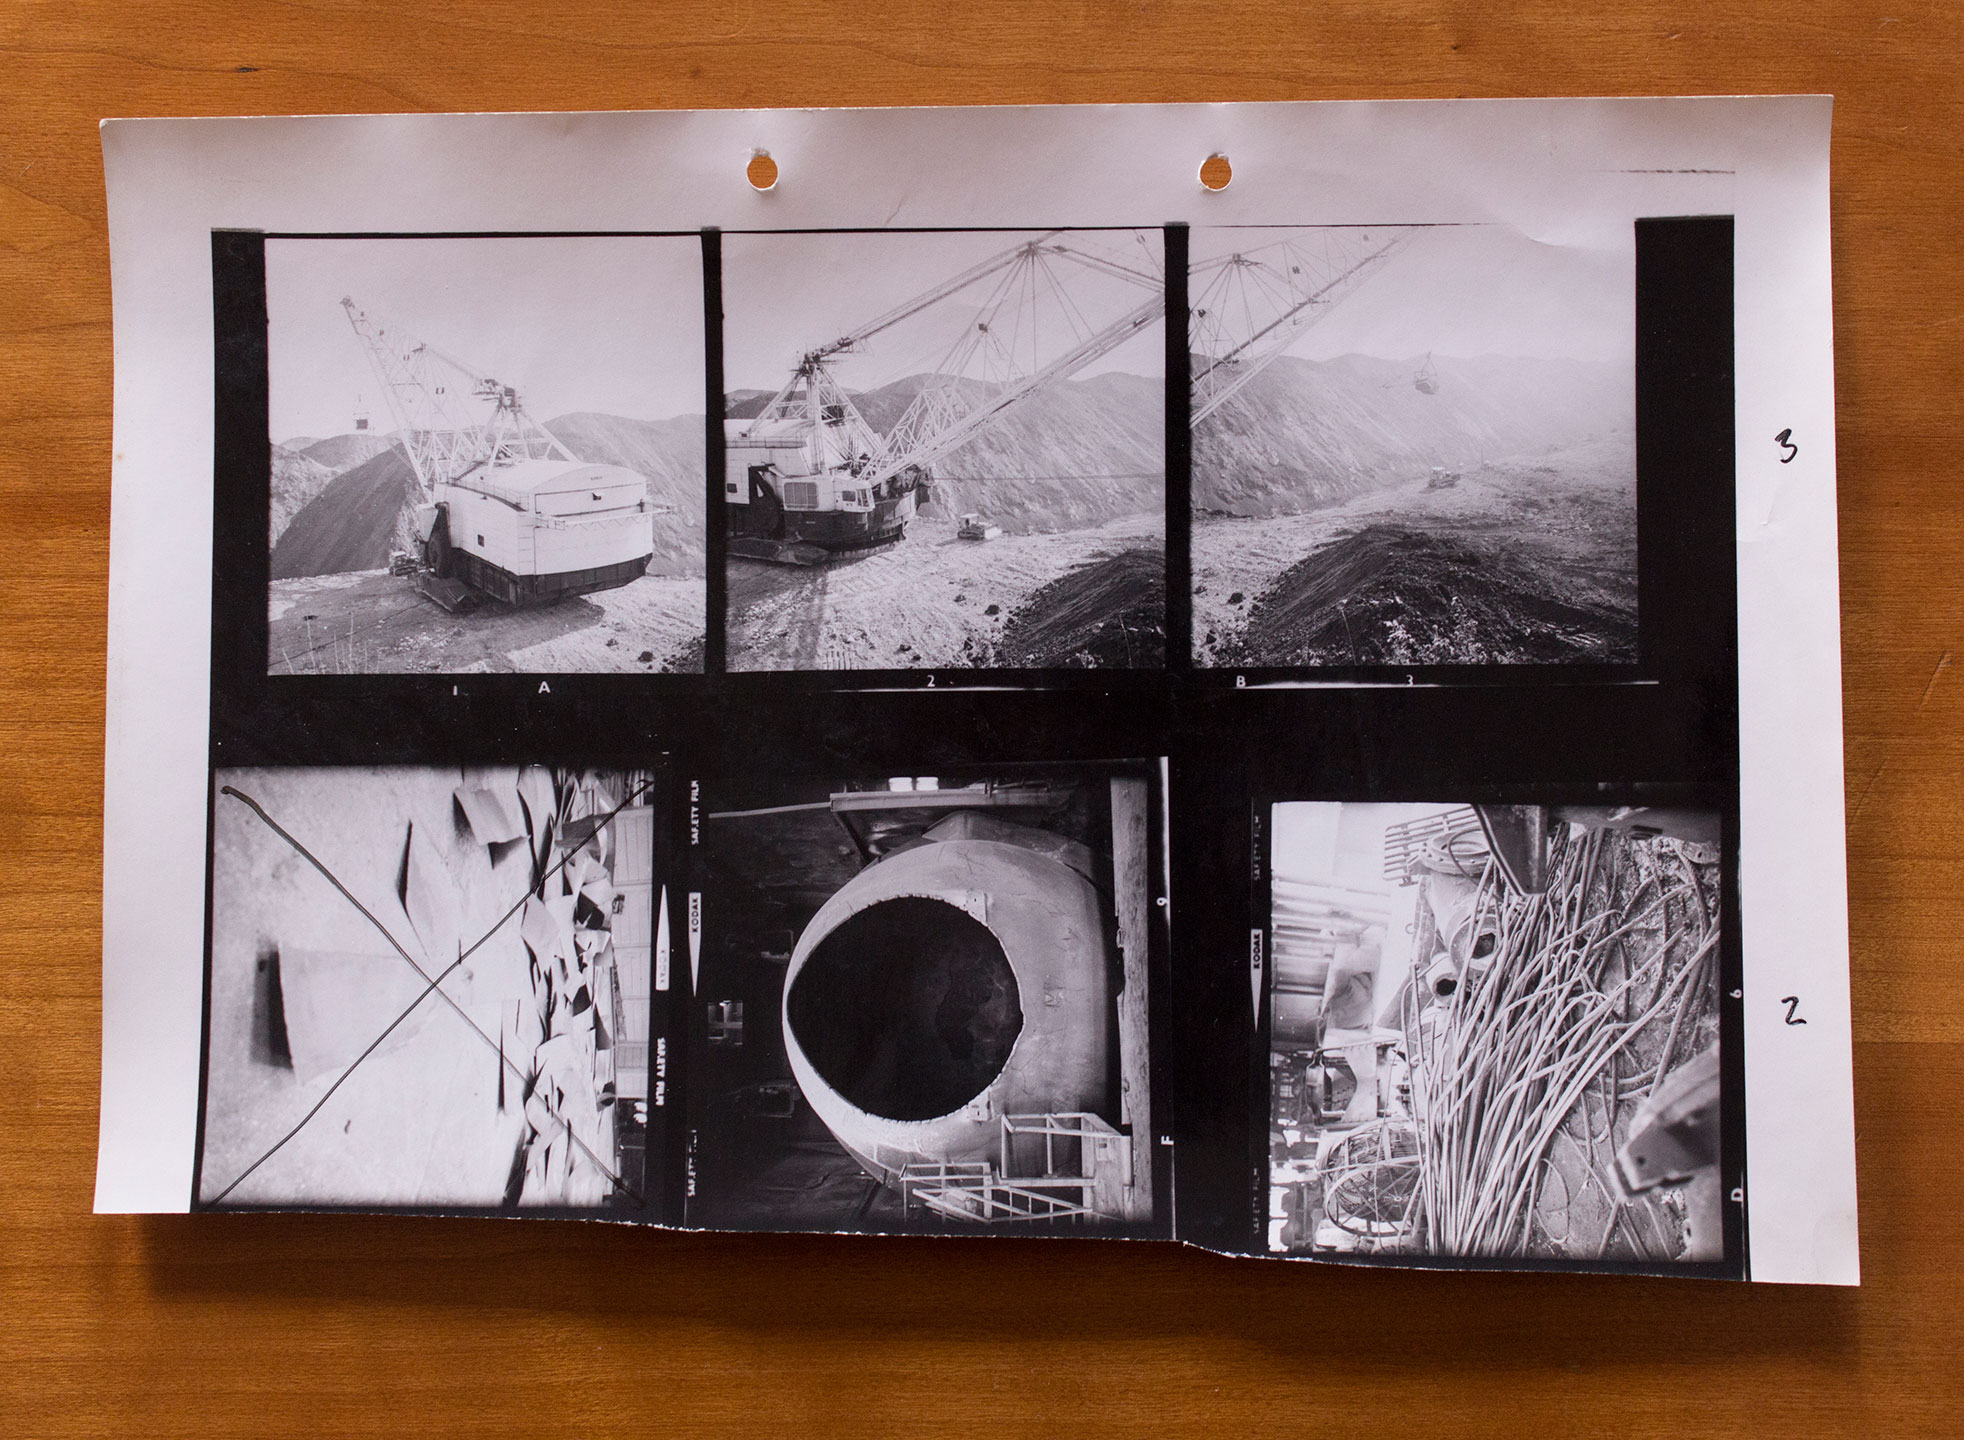 Contact sheet of photos taken by Garth Evans during his British Steel Corporation Fellowship